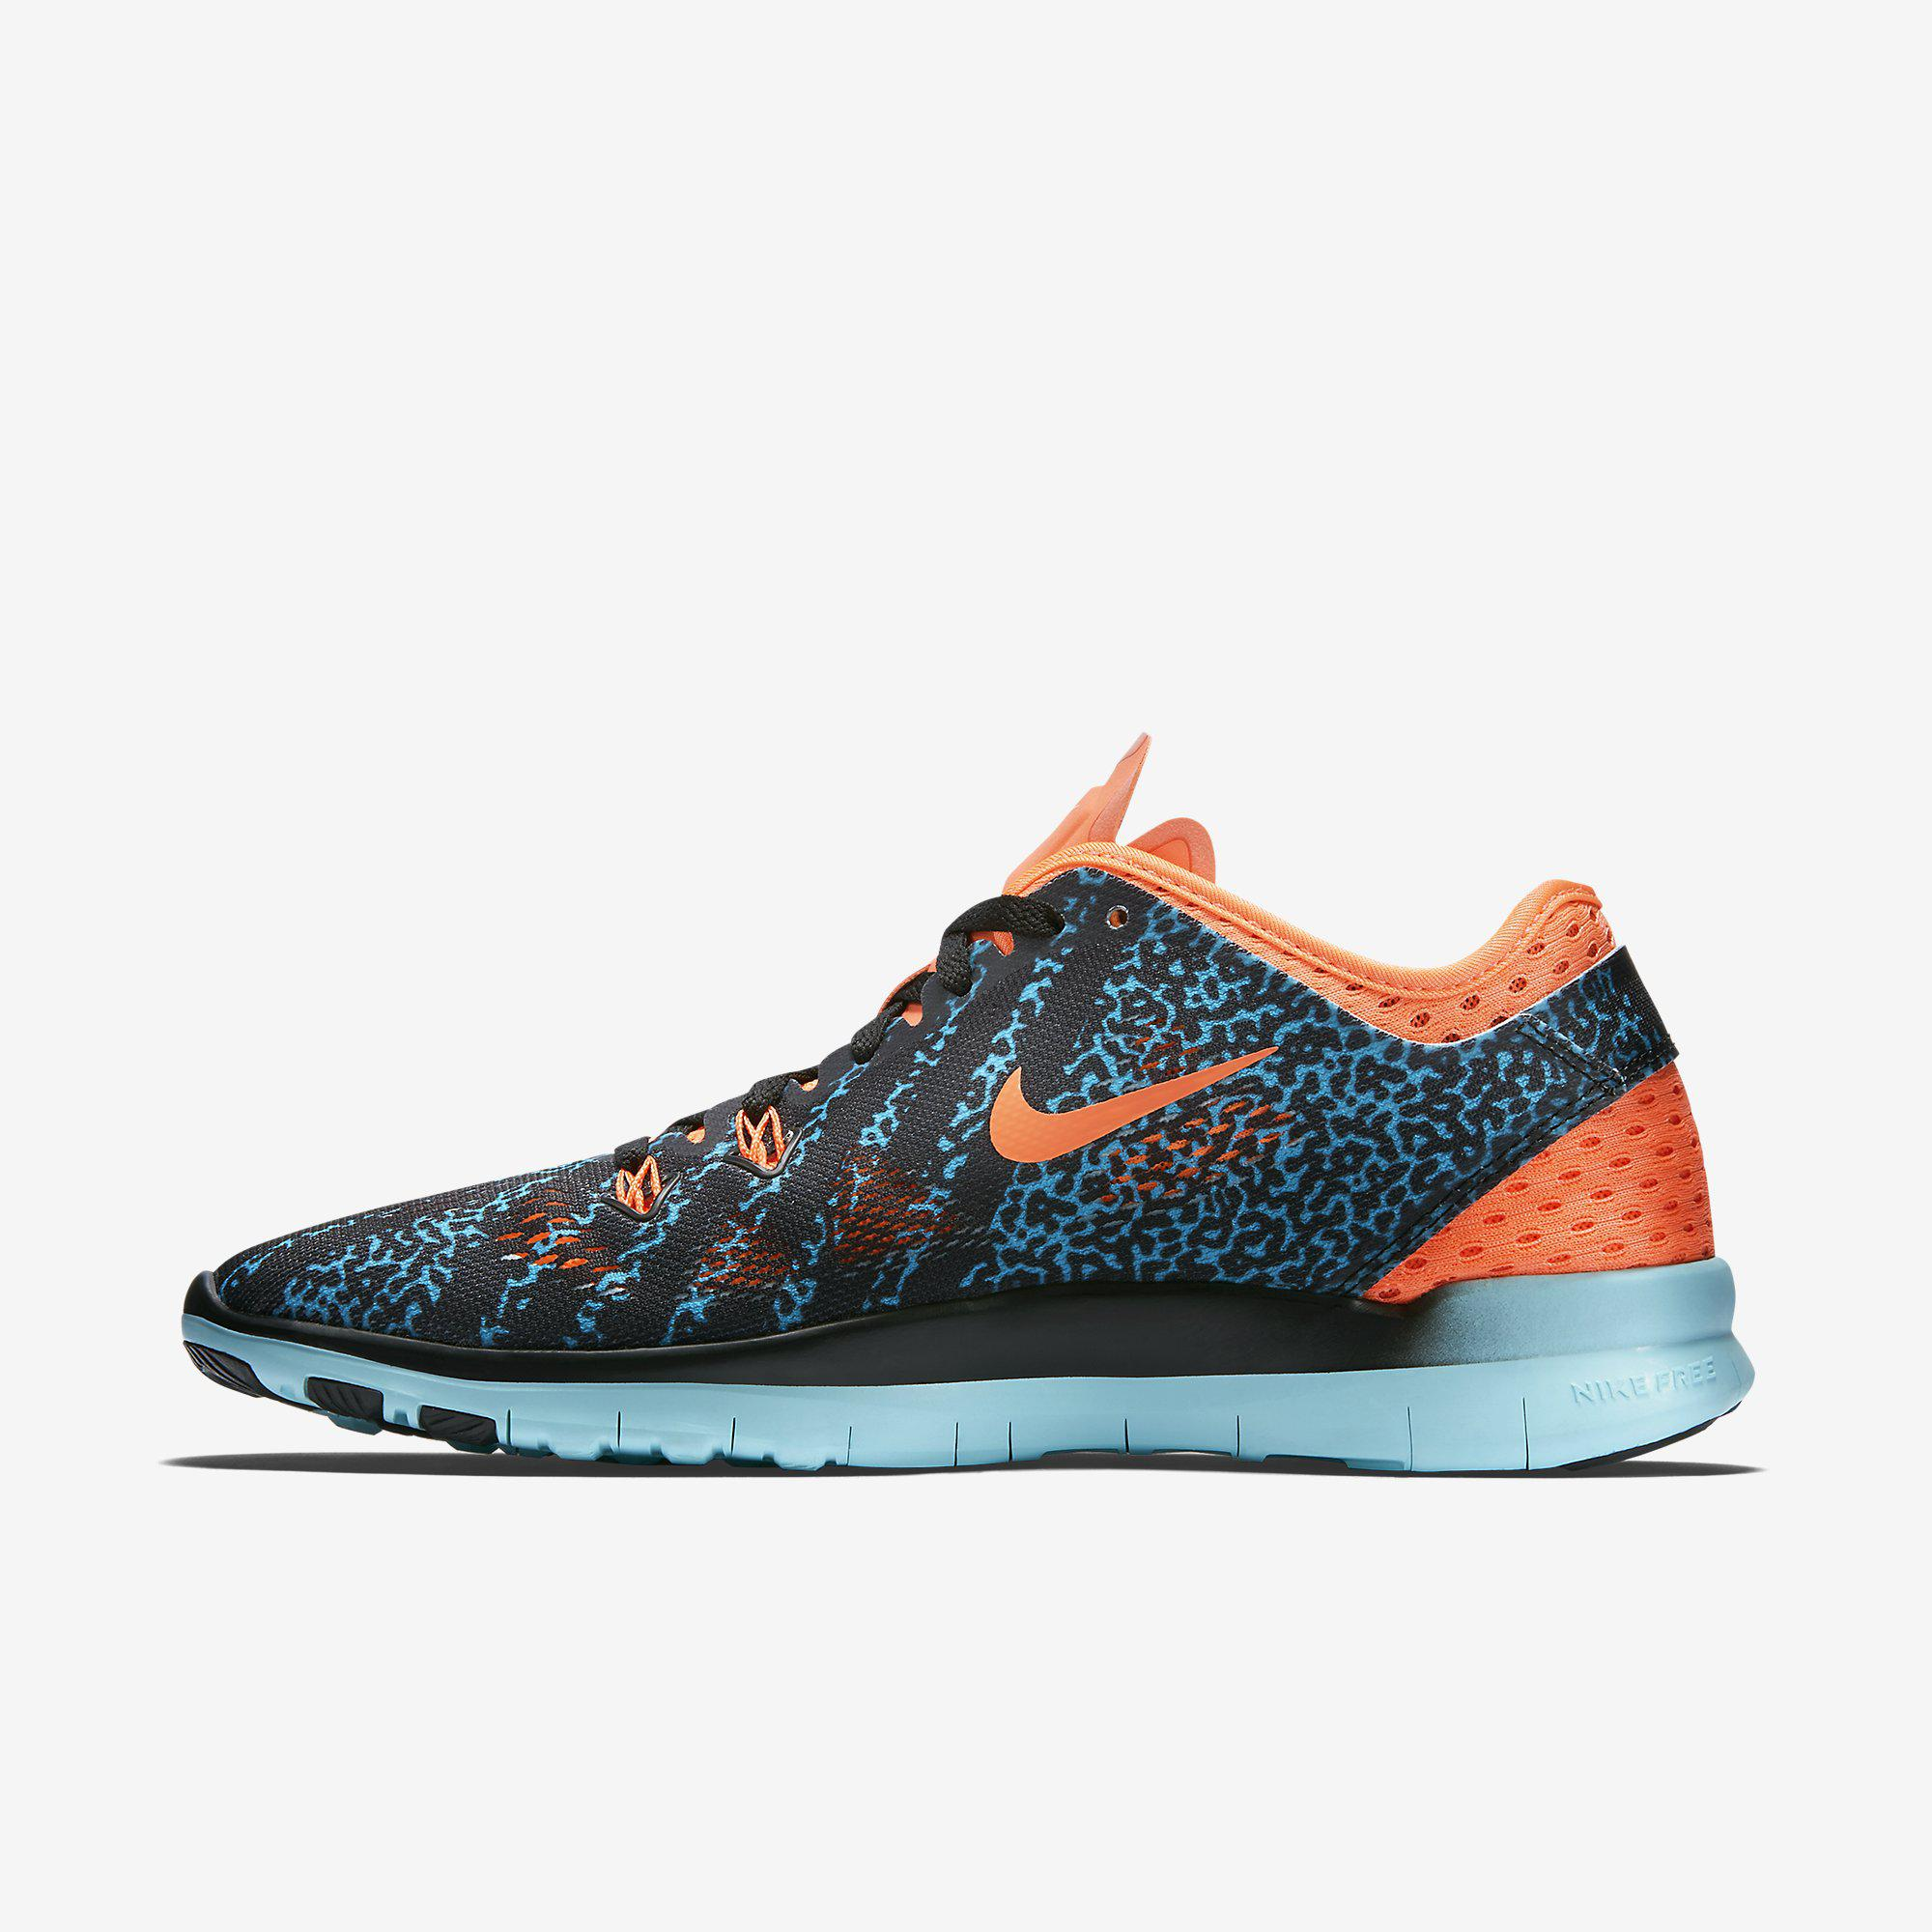 b546e181953f Nike Womens Free 5.0 TR Printed Training Shoes - Black Hot Lava Artisan Teal